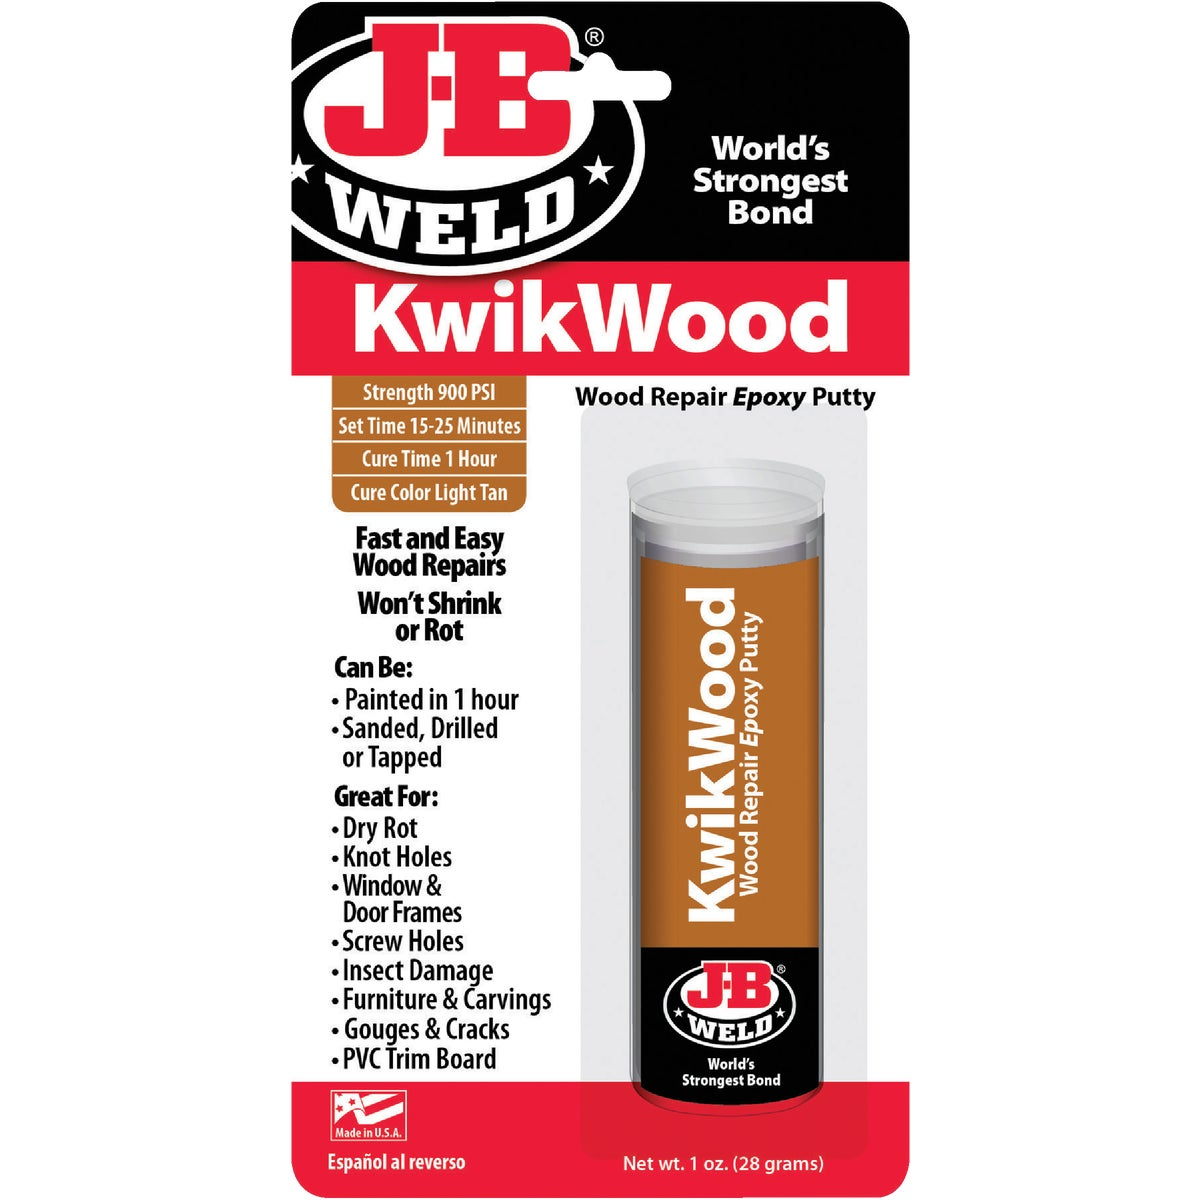 KWIKWOOD REPAIR EPOXY - 8257 by J B Weld Co